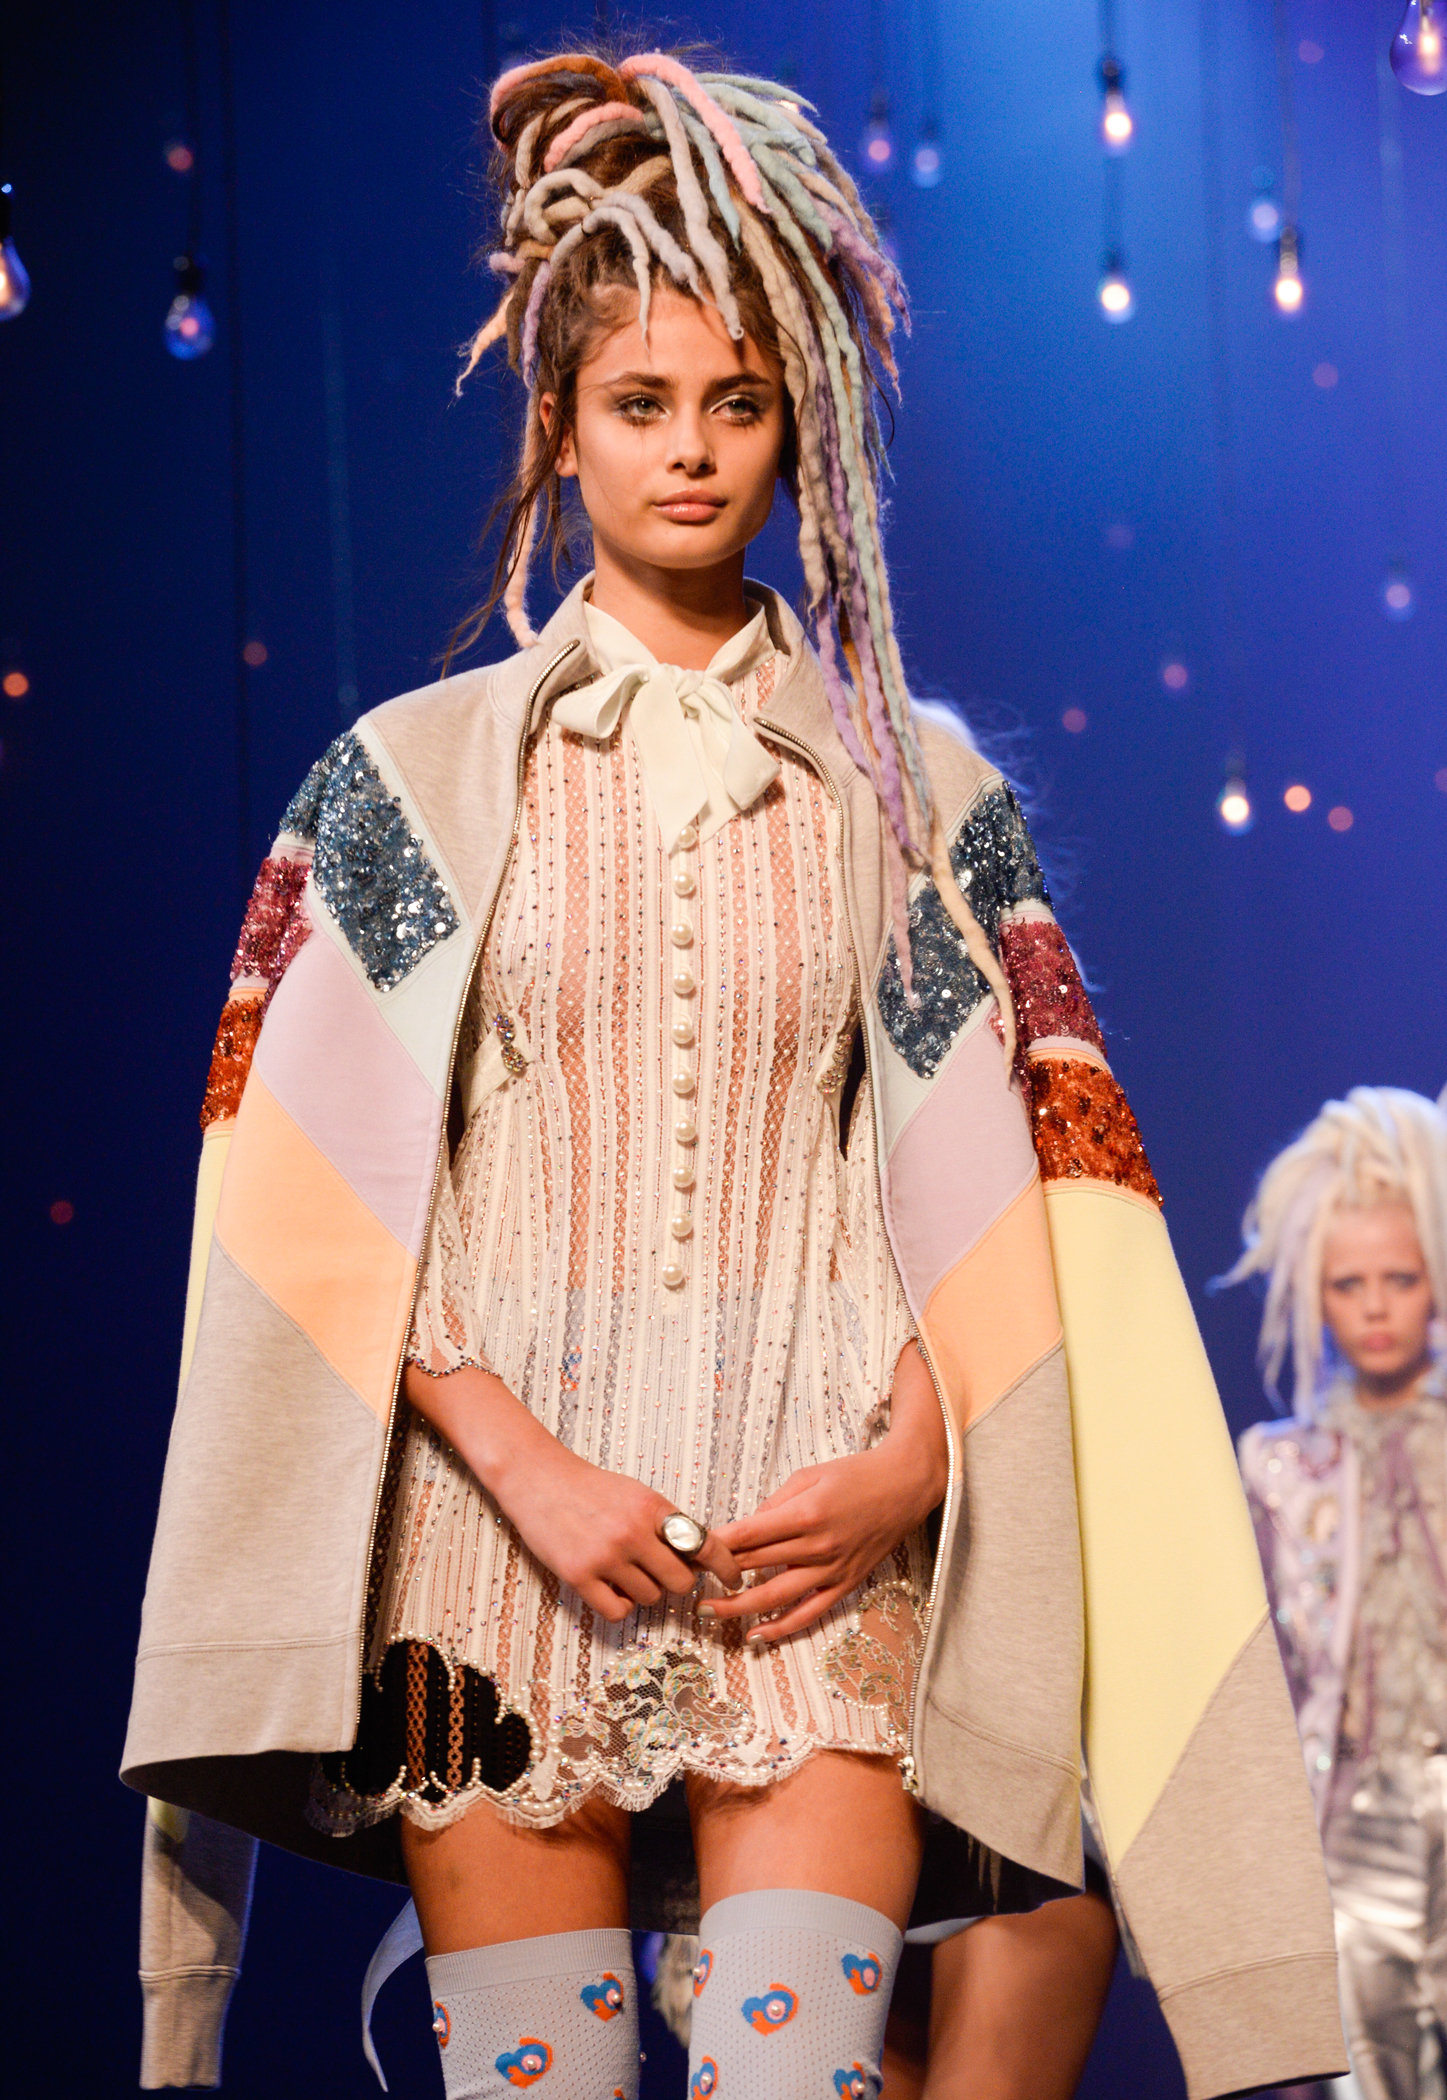 Marc Jacobs Brings Nyfw To A Close With Kendall Jenner And Irina